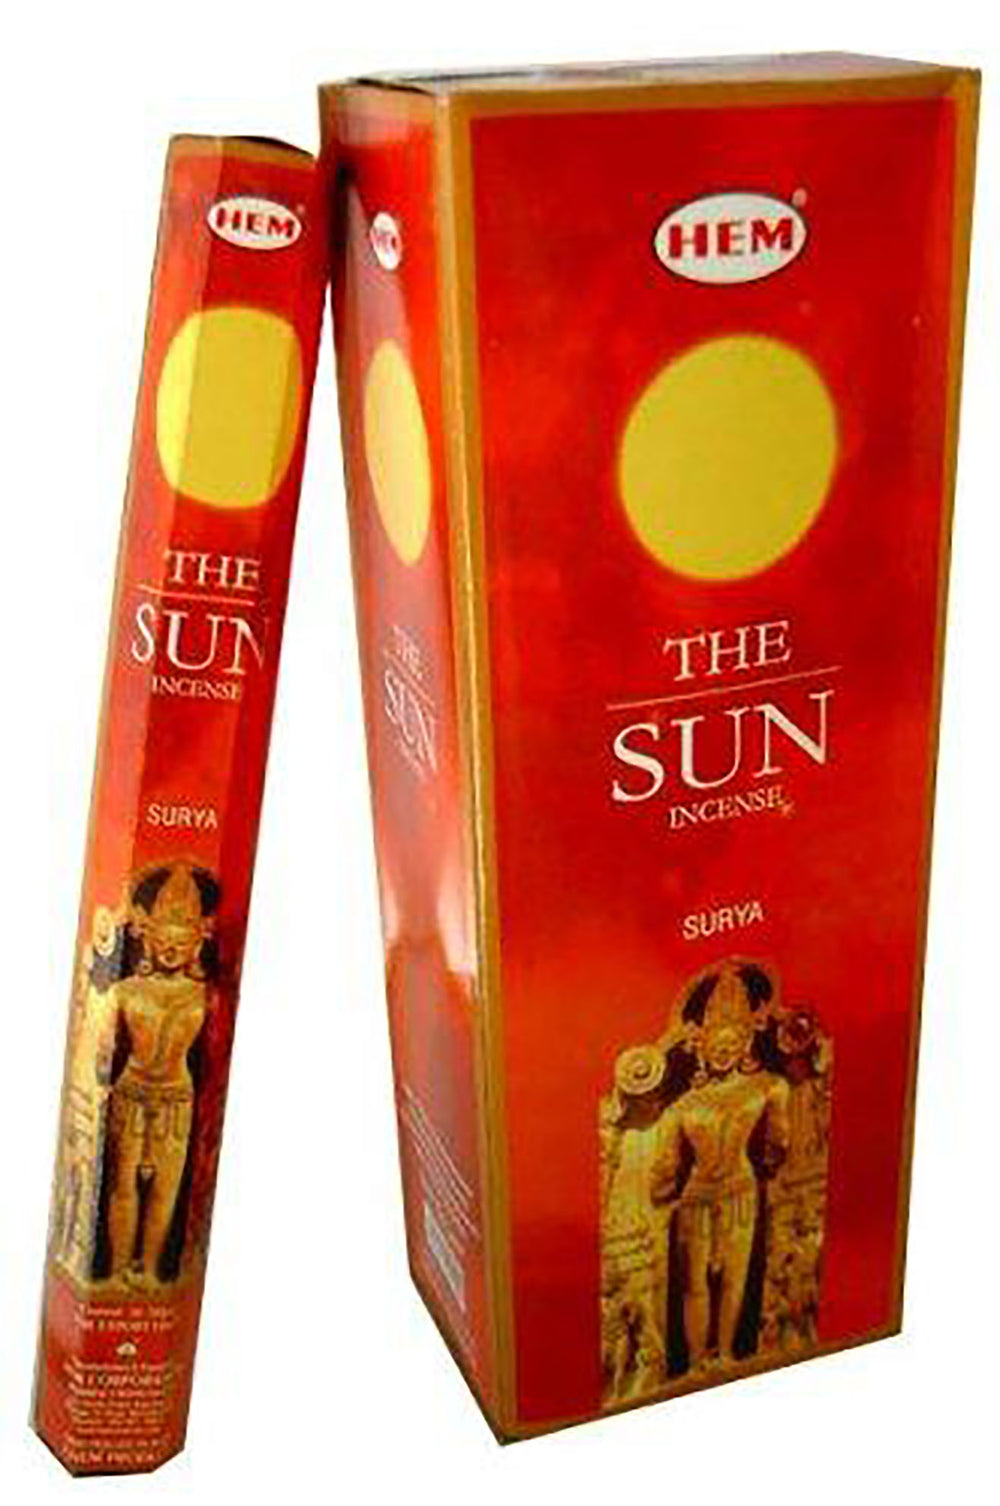 Hem Sun Incense Stick Hexa